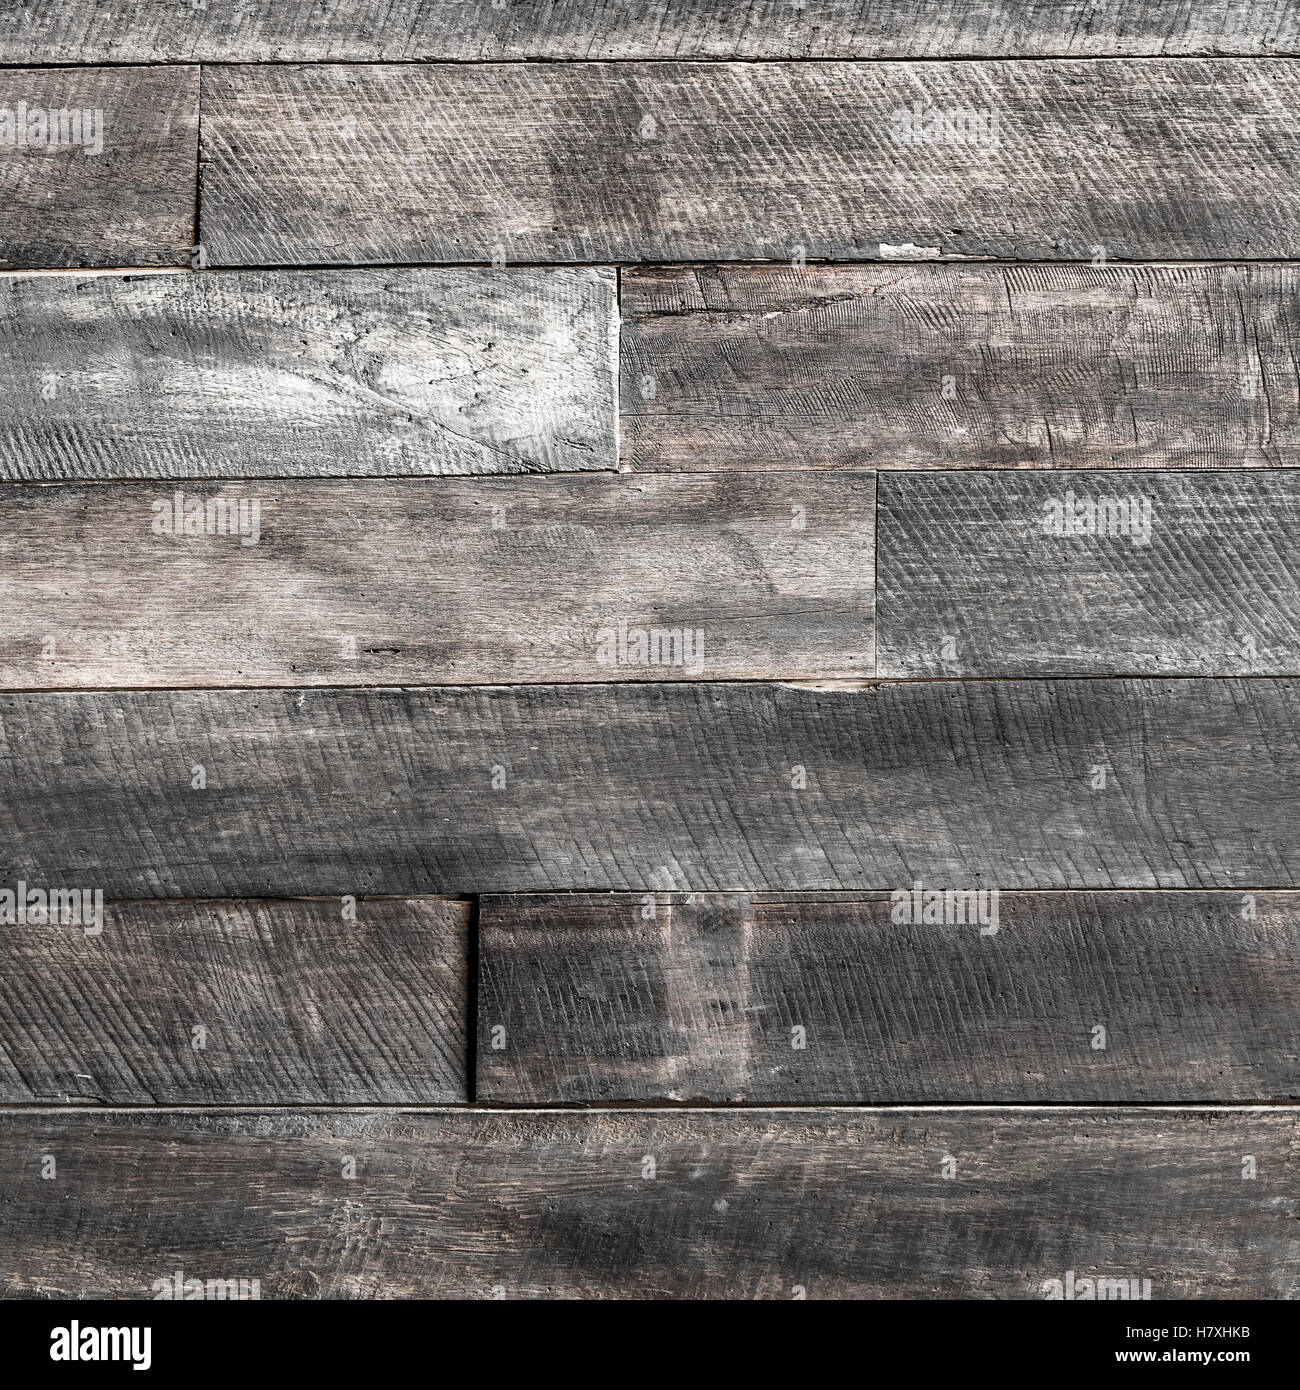 Wood texture wooden plank - Stock Photo Close Up Of Wall Made Of Wooden Planks Wood Texture Background Old Panels